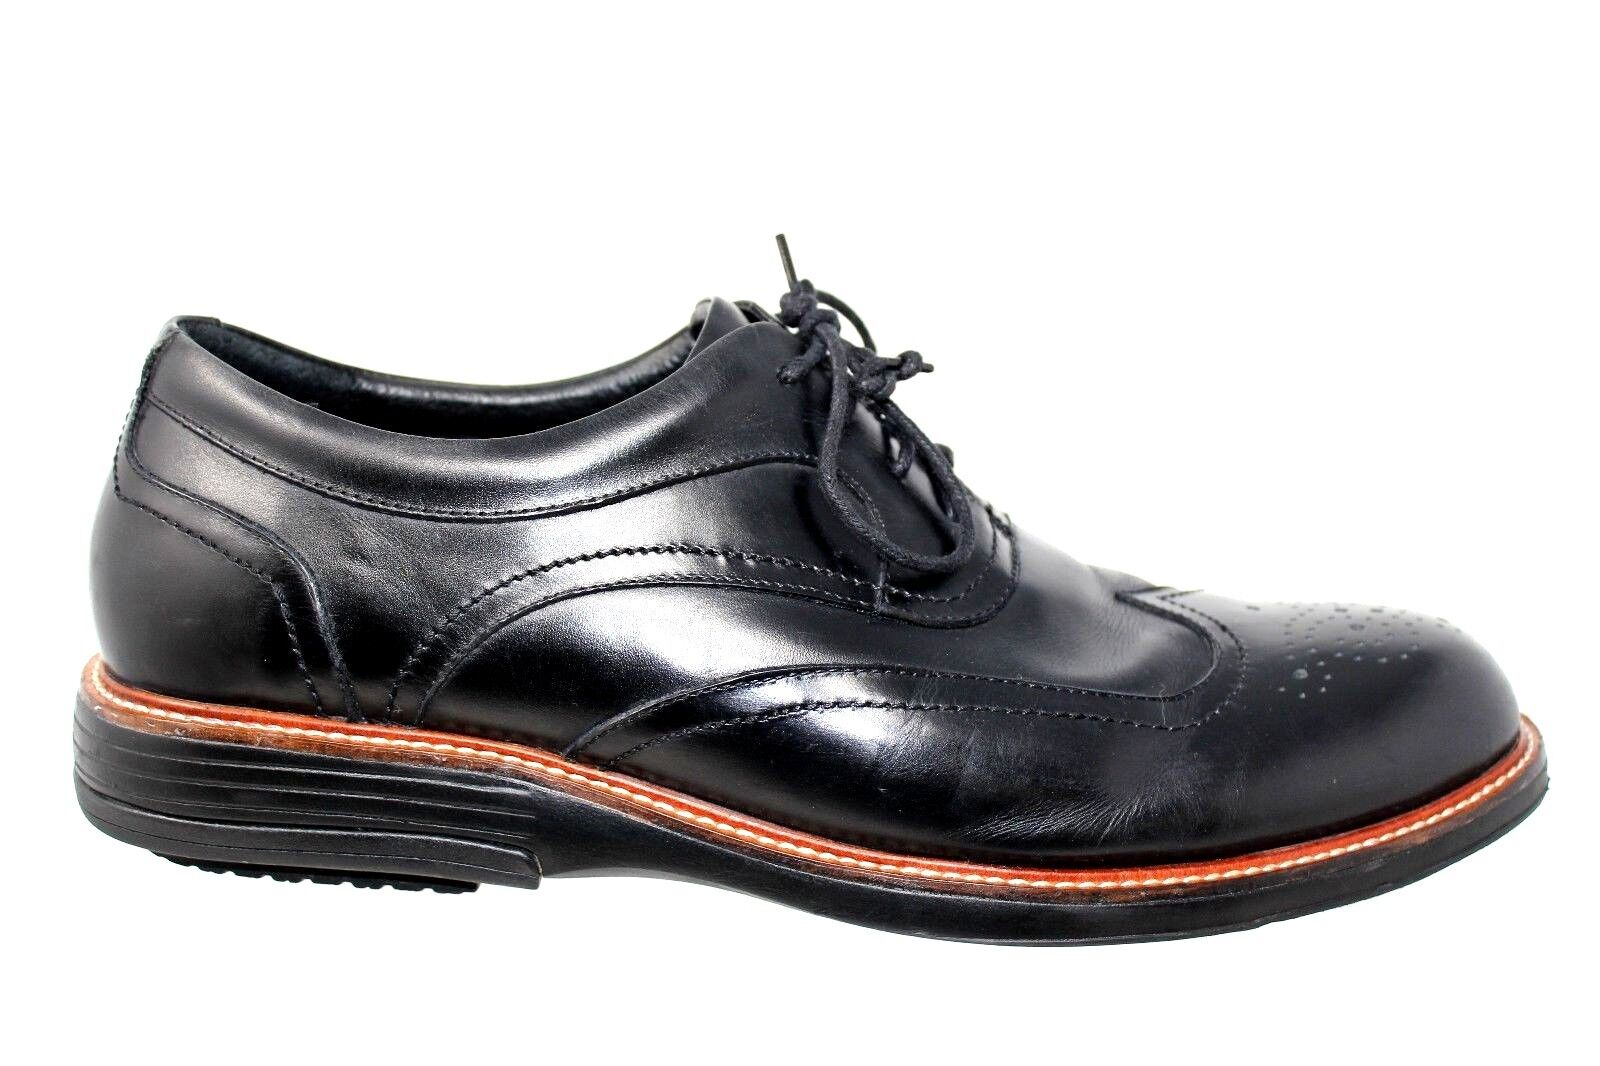 Gravity Defyer Windsor Full Brogue Wingtip Leather Dress Oxford Oxford Oxford schuhe Größe 15M a0a11a